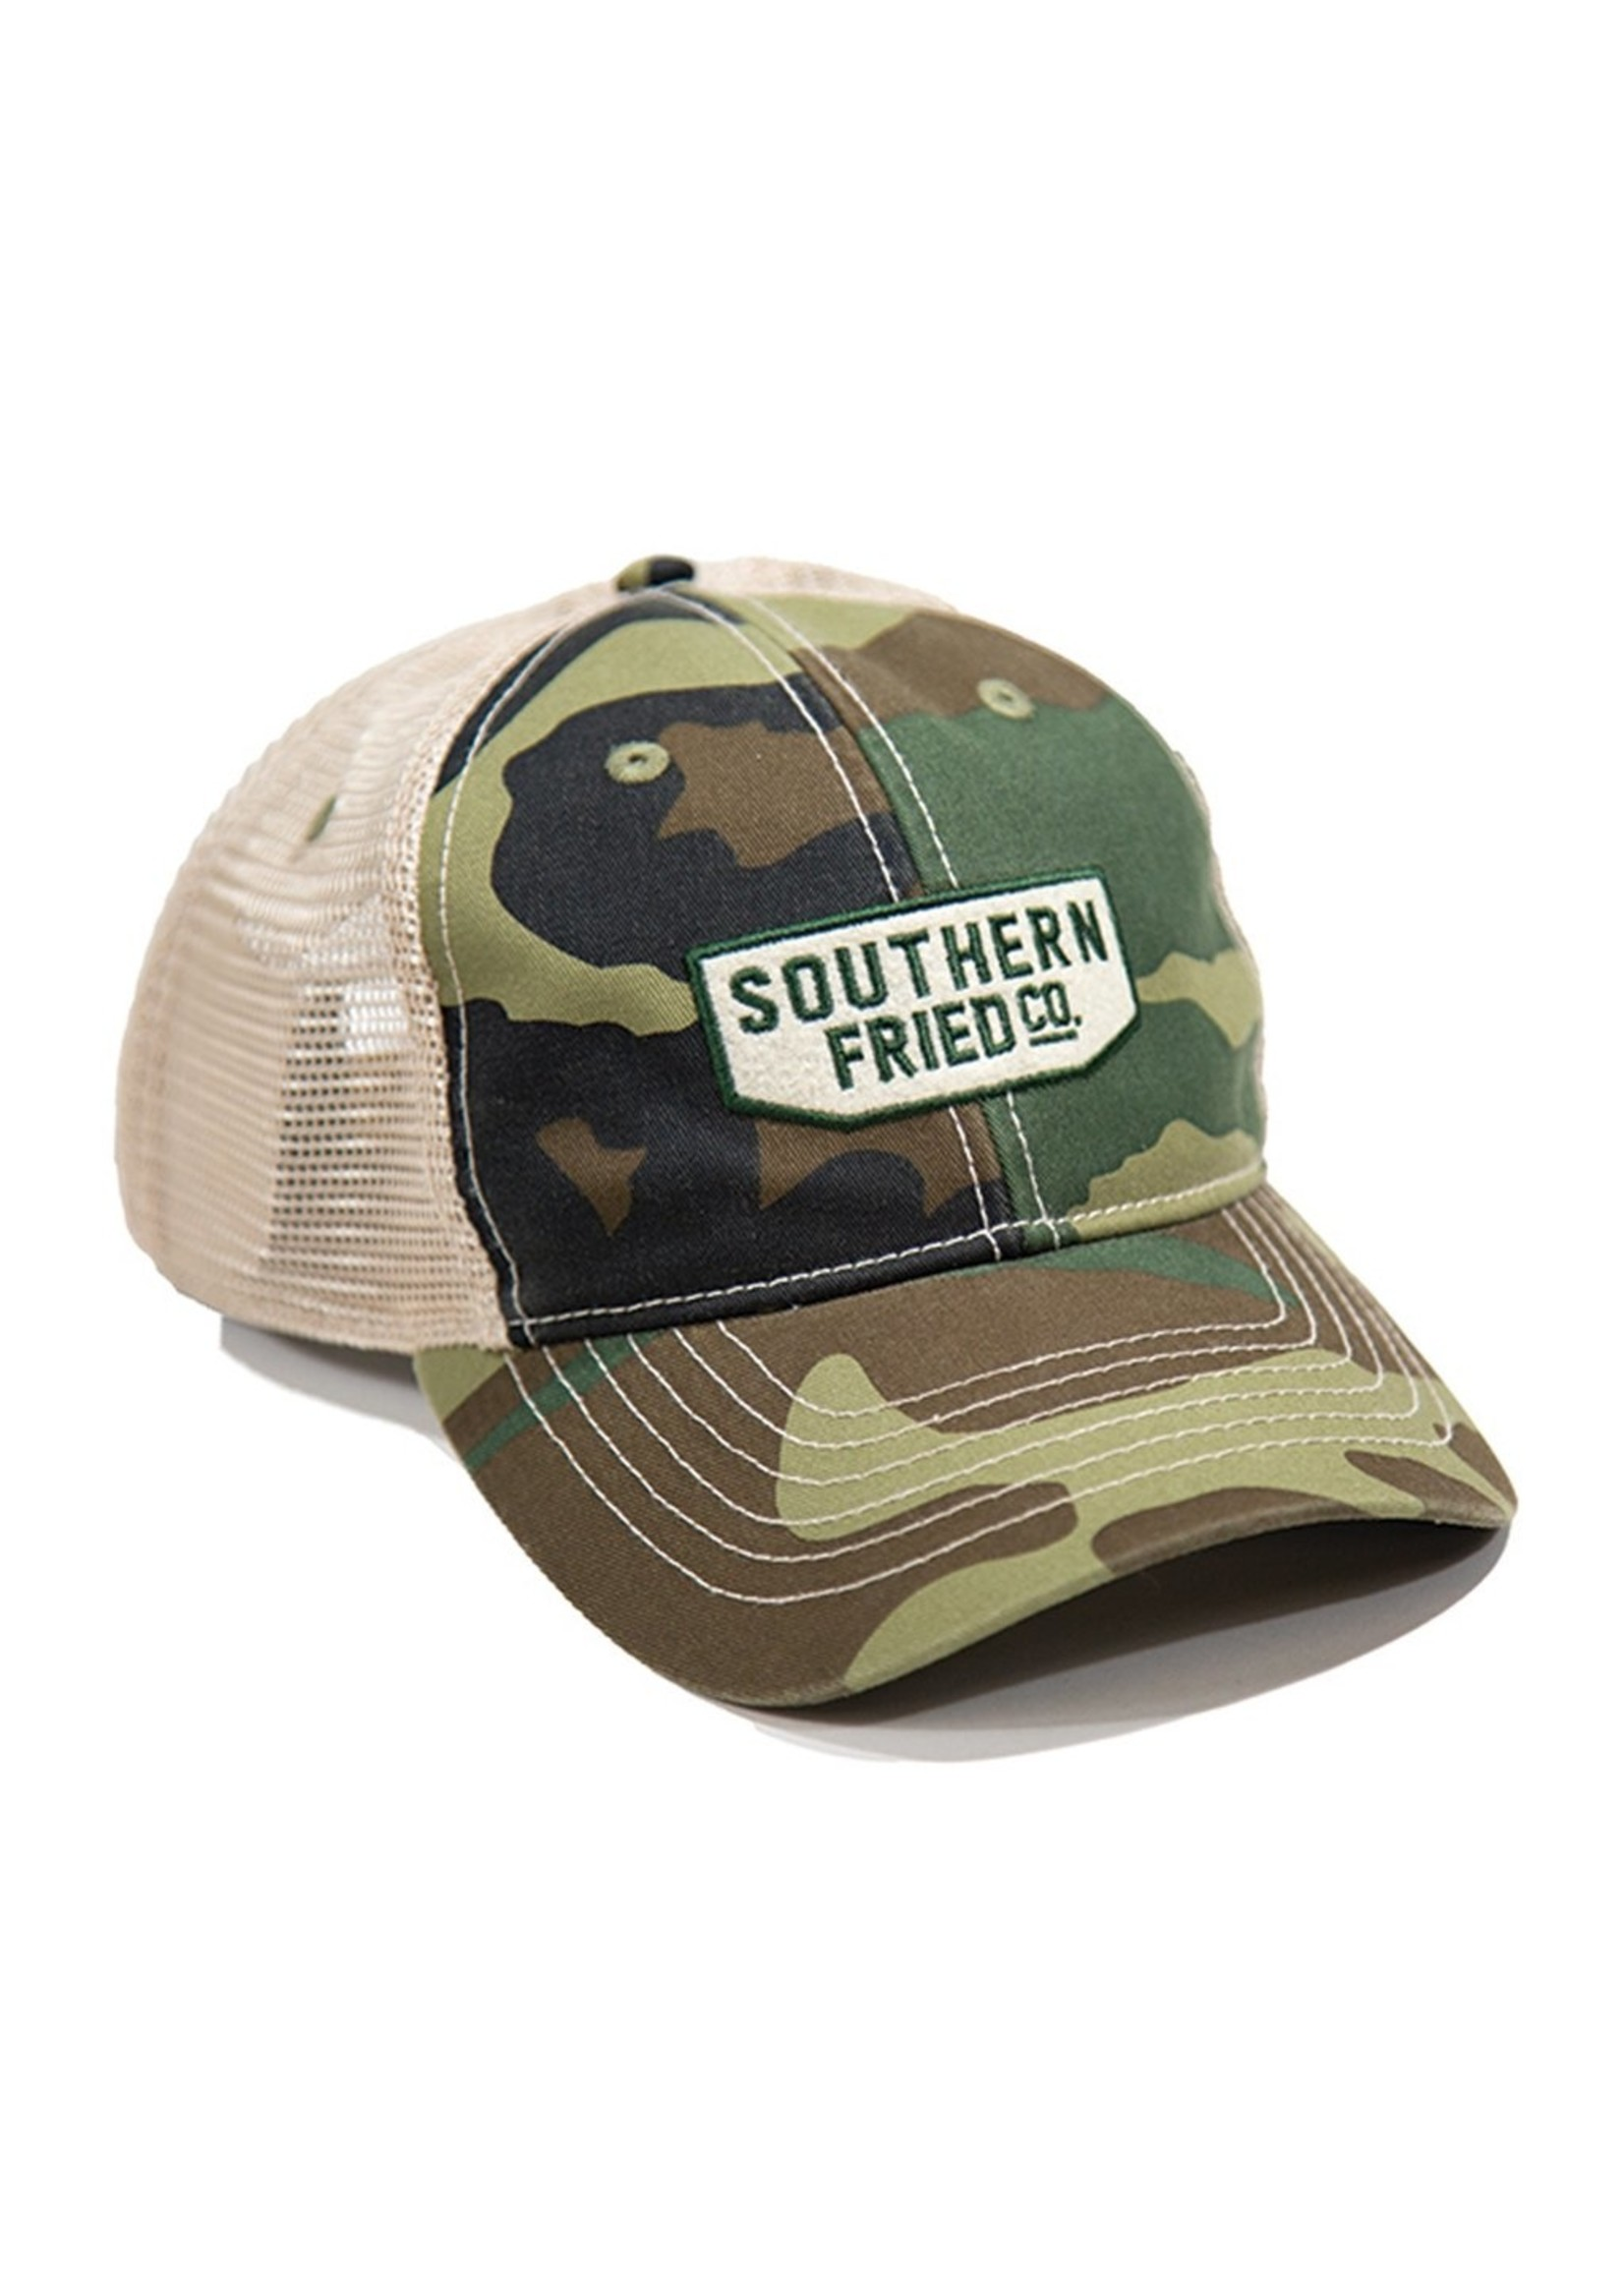 Southern Fried Cotton Camo Ranger Hat